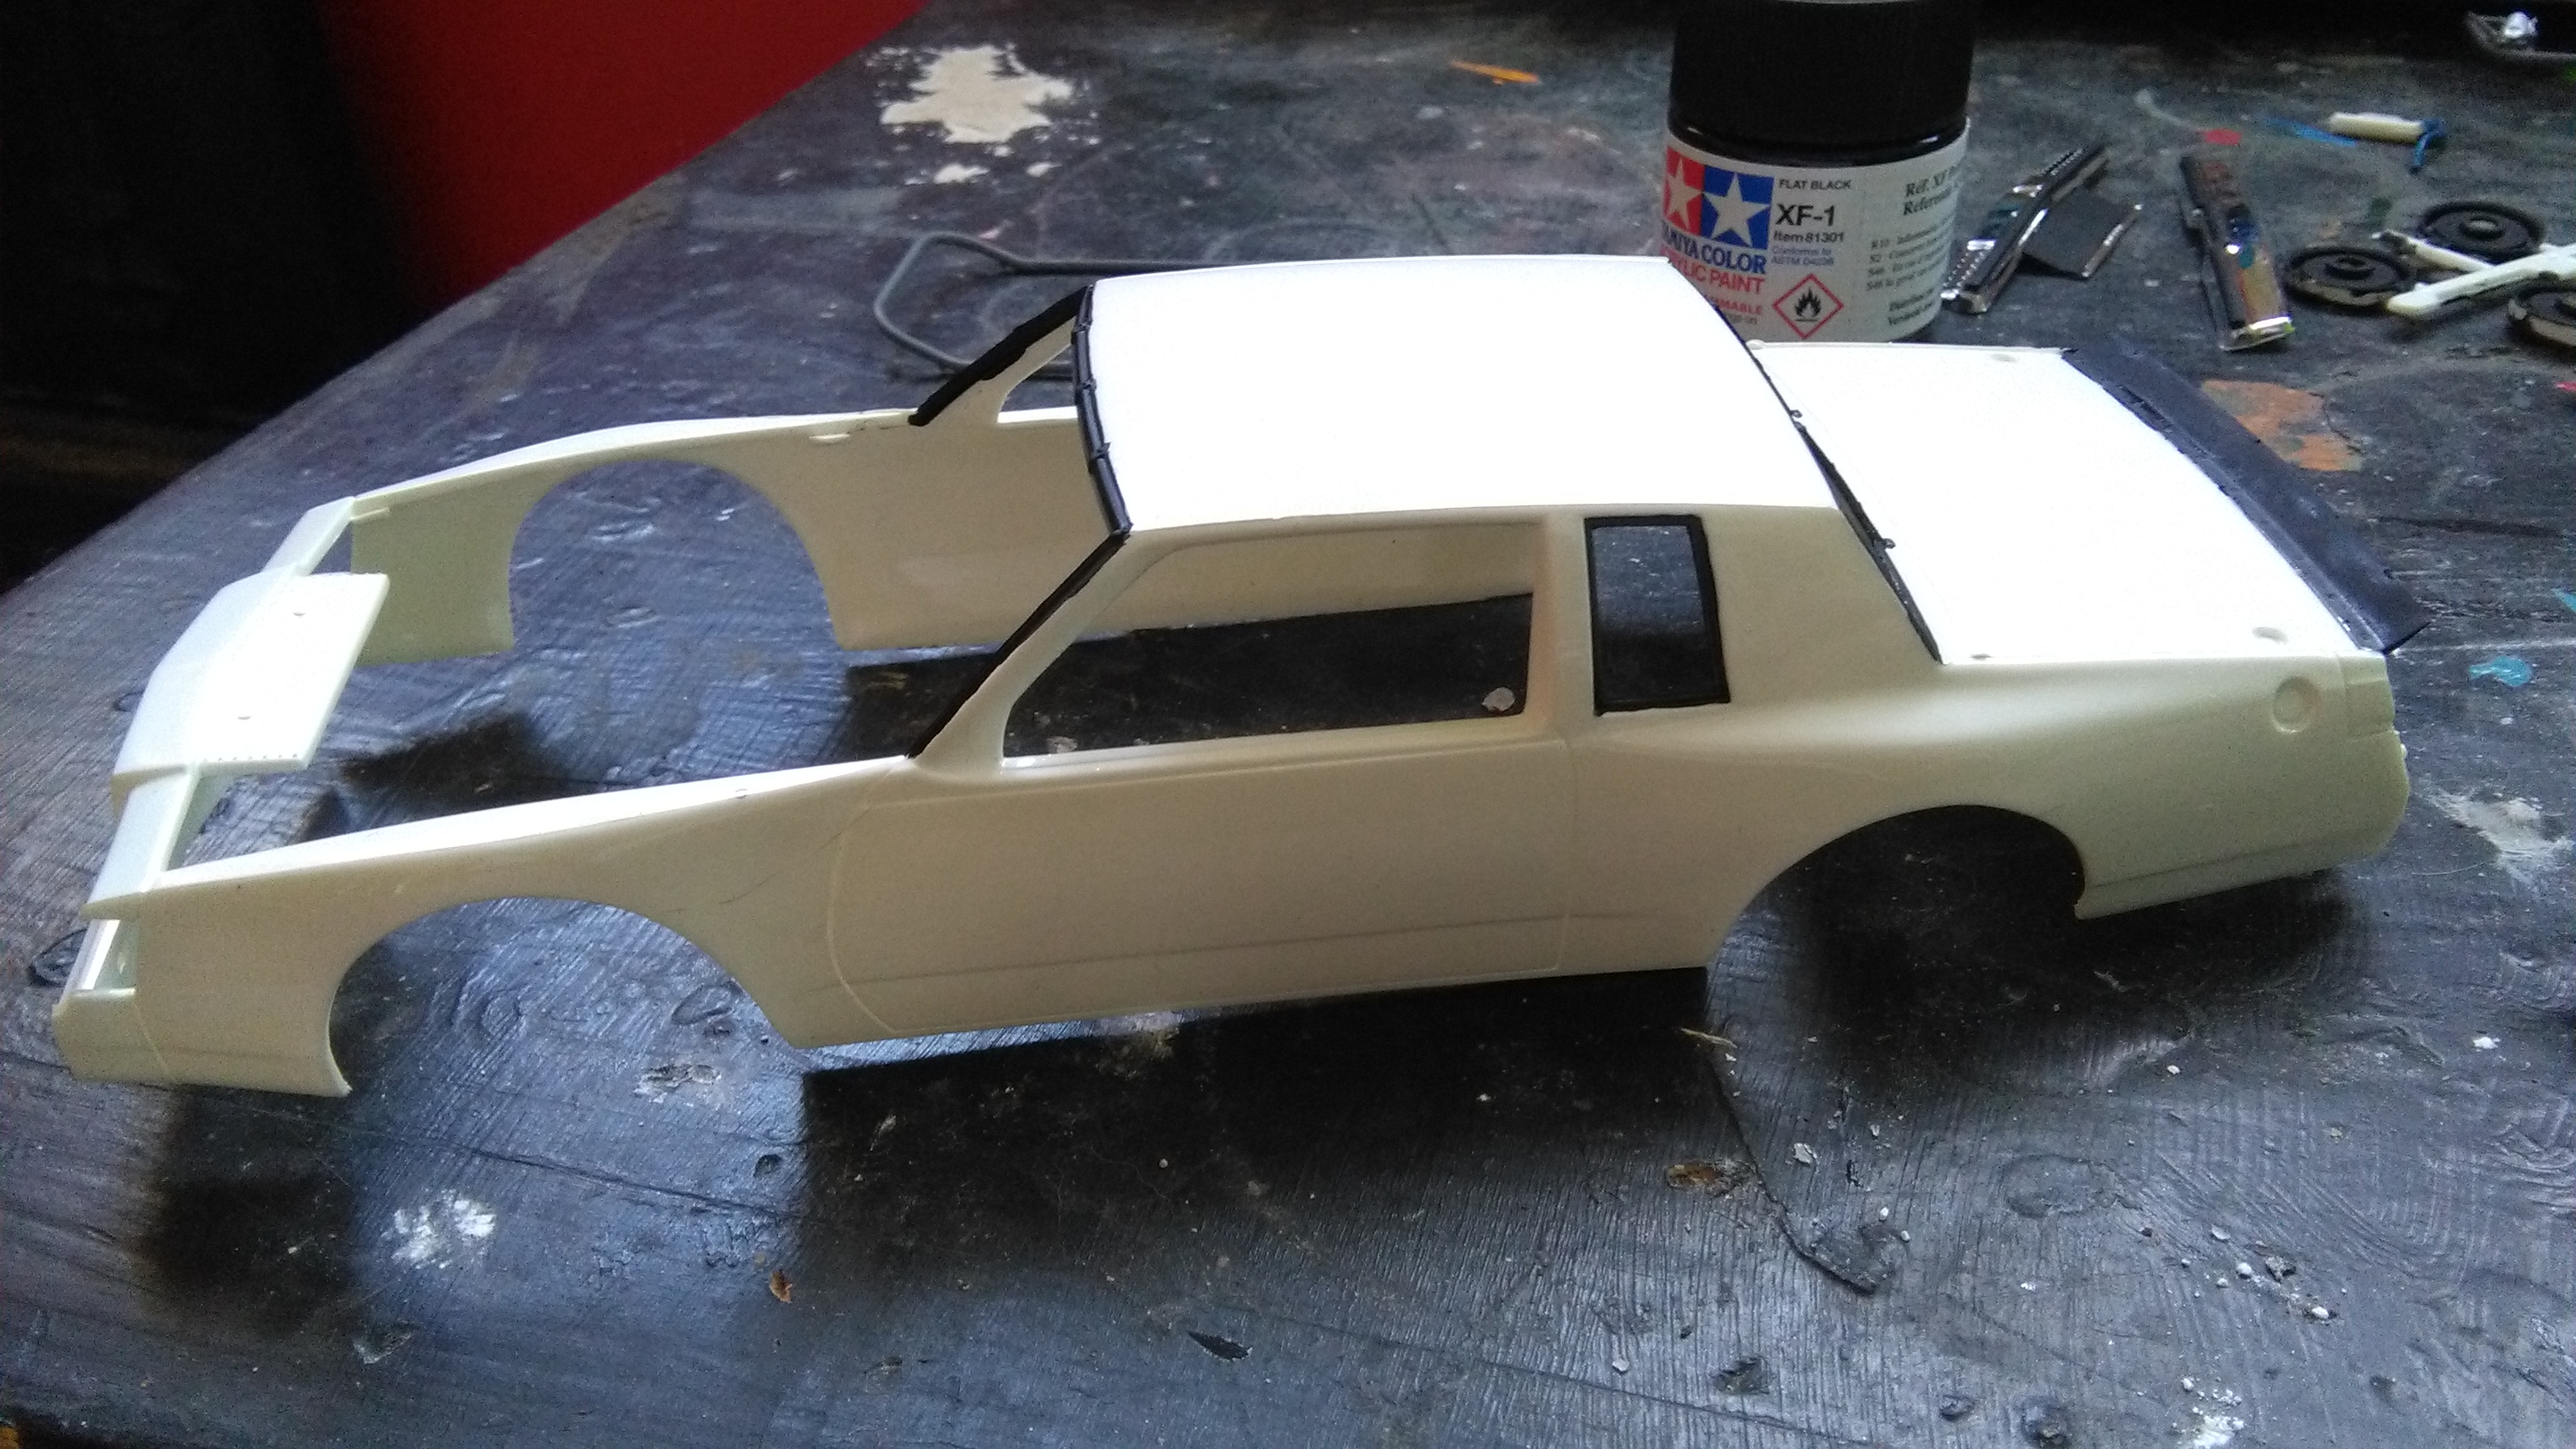 Buick Regal 1982 #52 Jimmy Means Broadway motor  681390IMG20170212151636